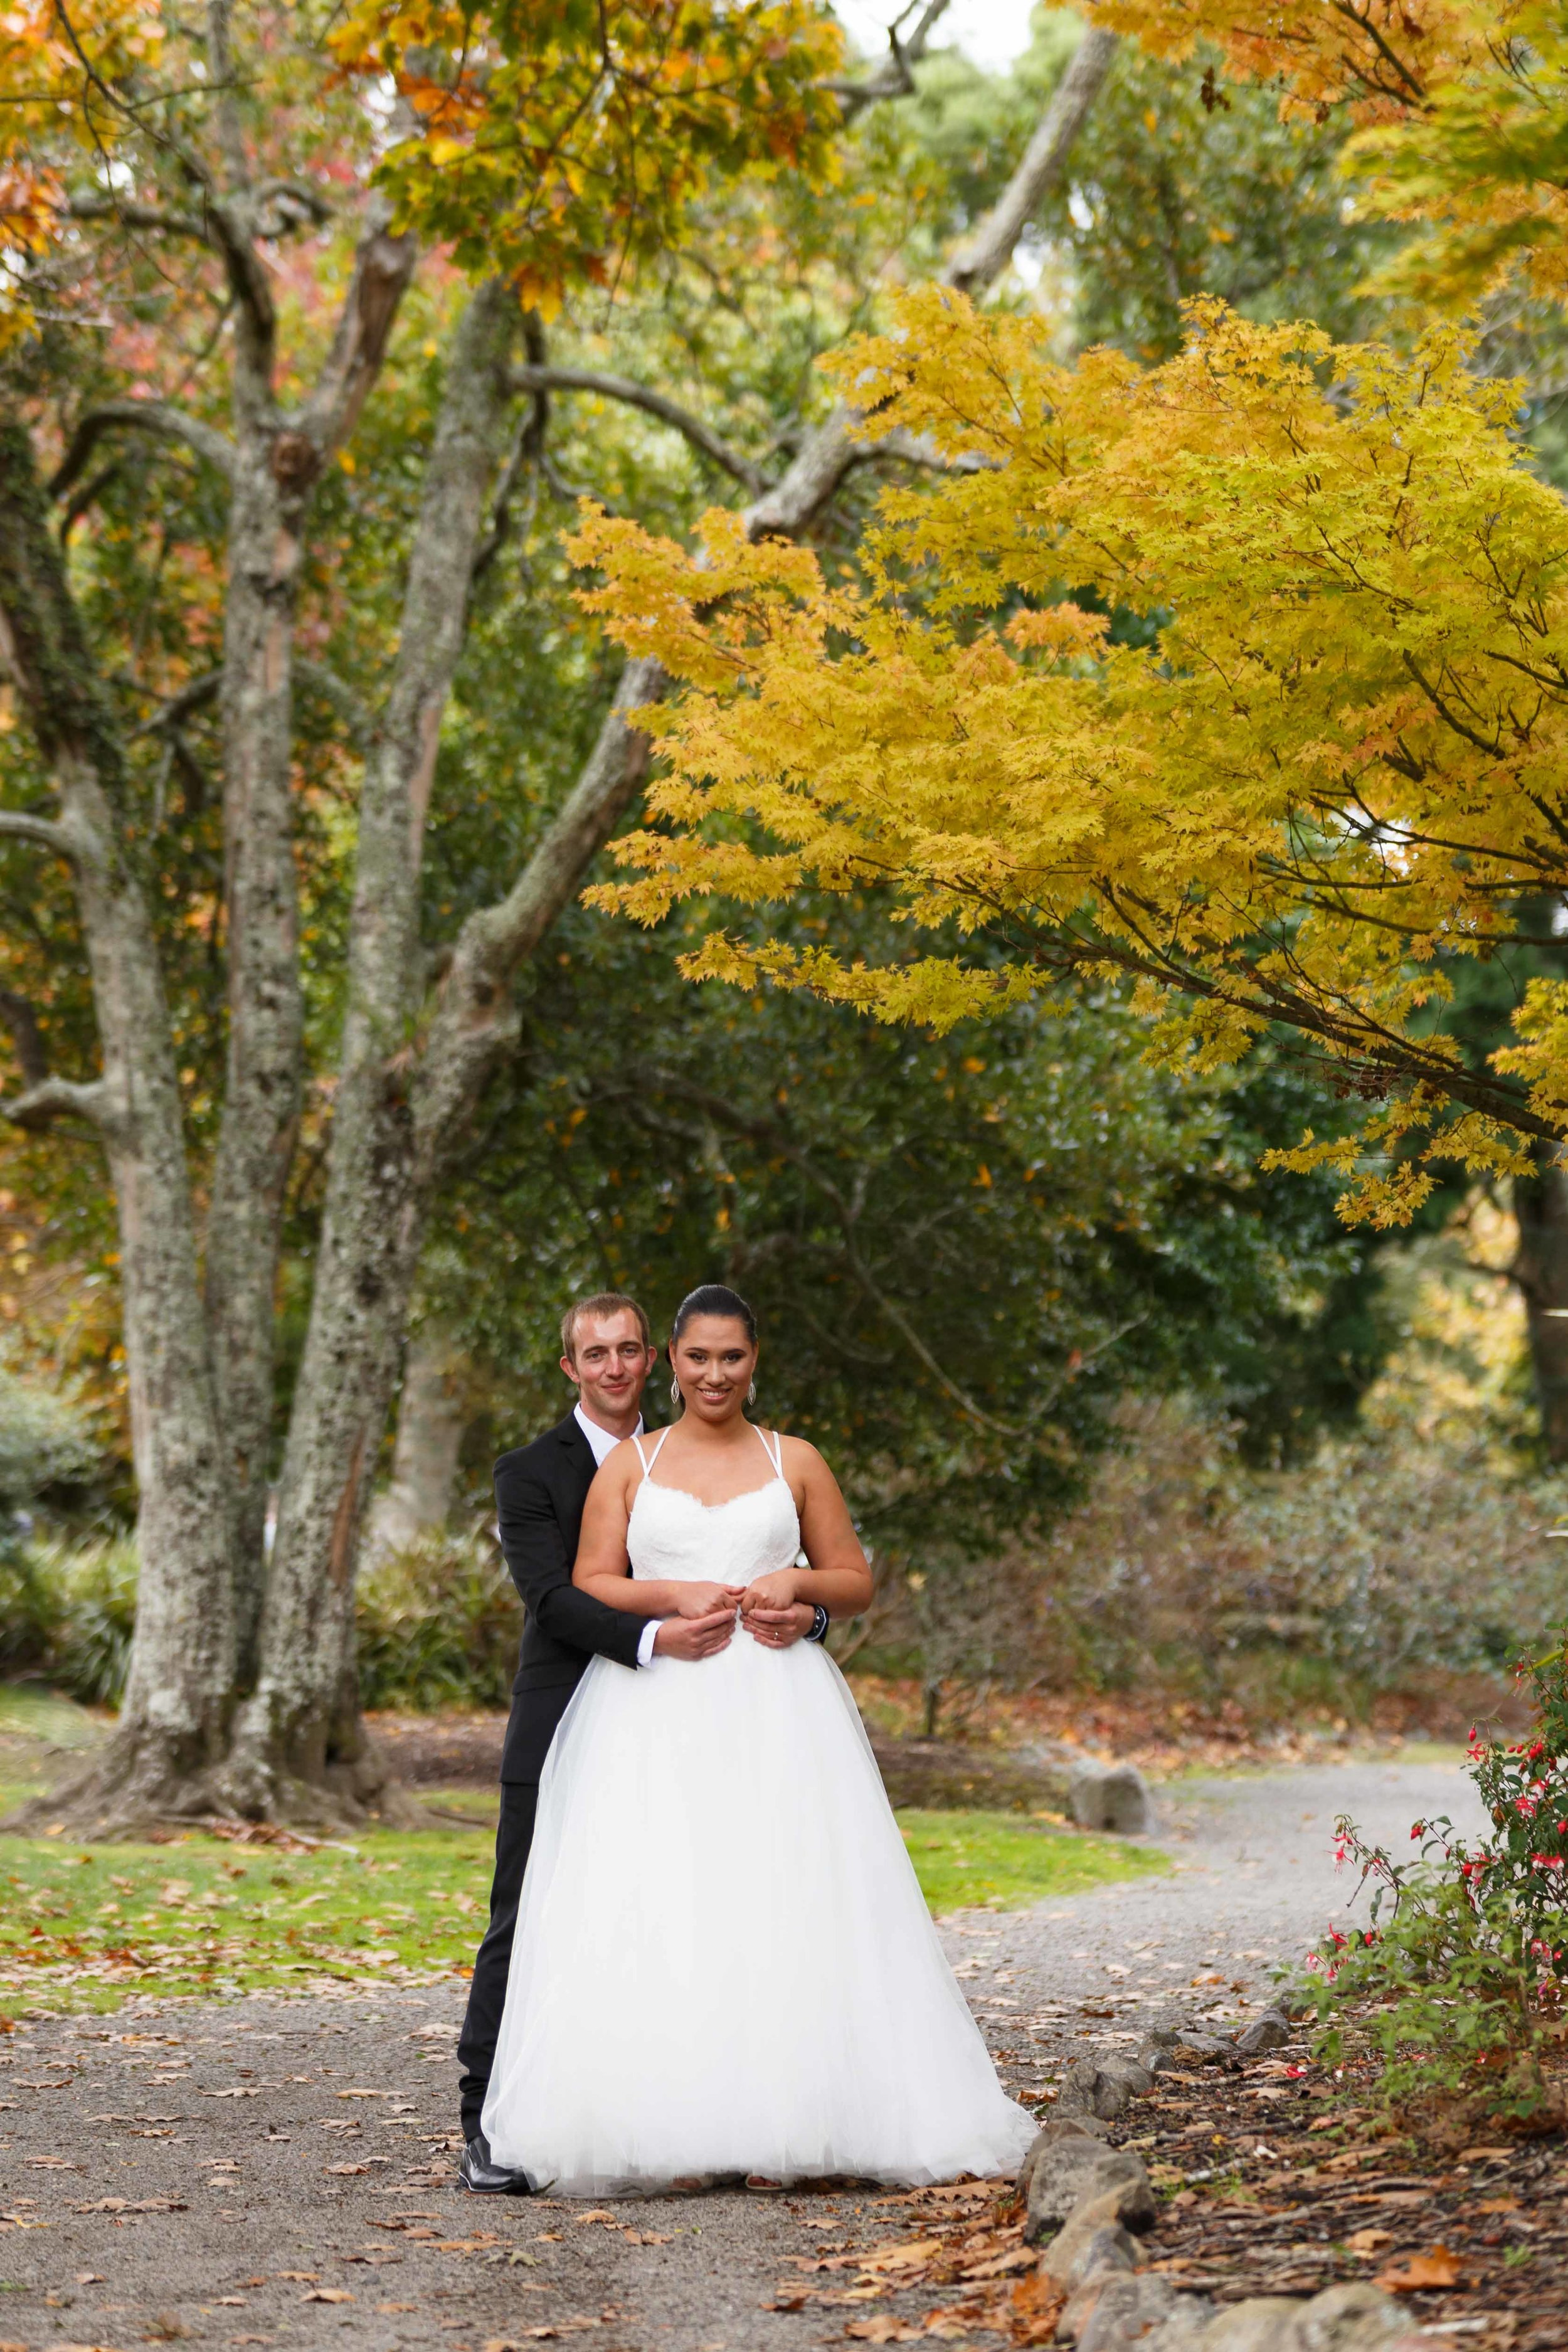 Highight-wedding-photography-the-chalet-palmerston-north-new-zealand-79.jpg